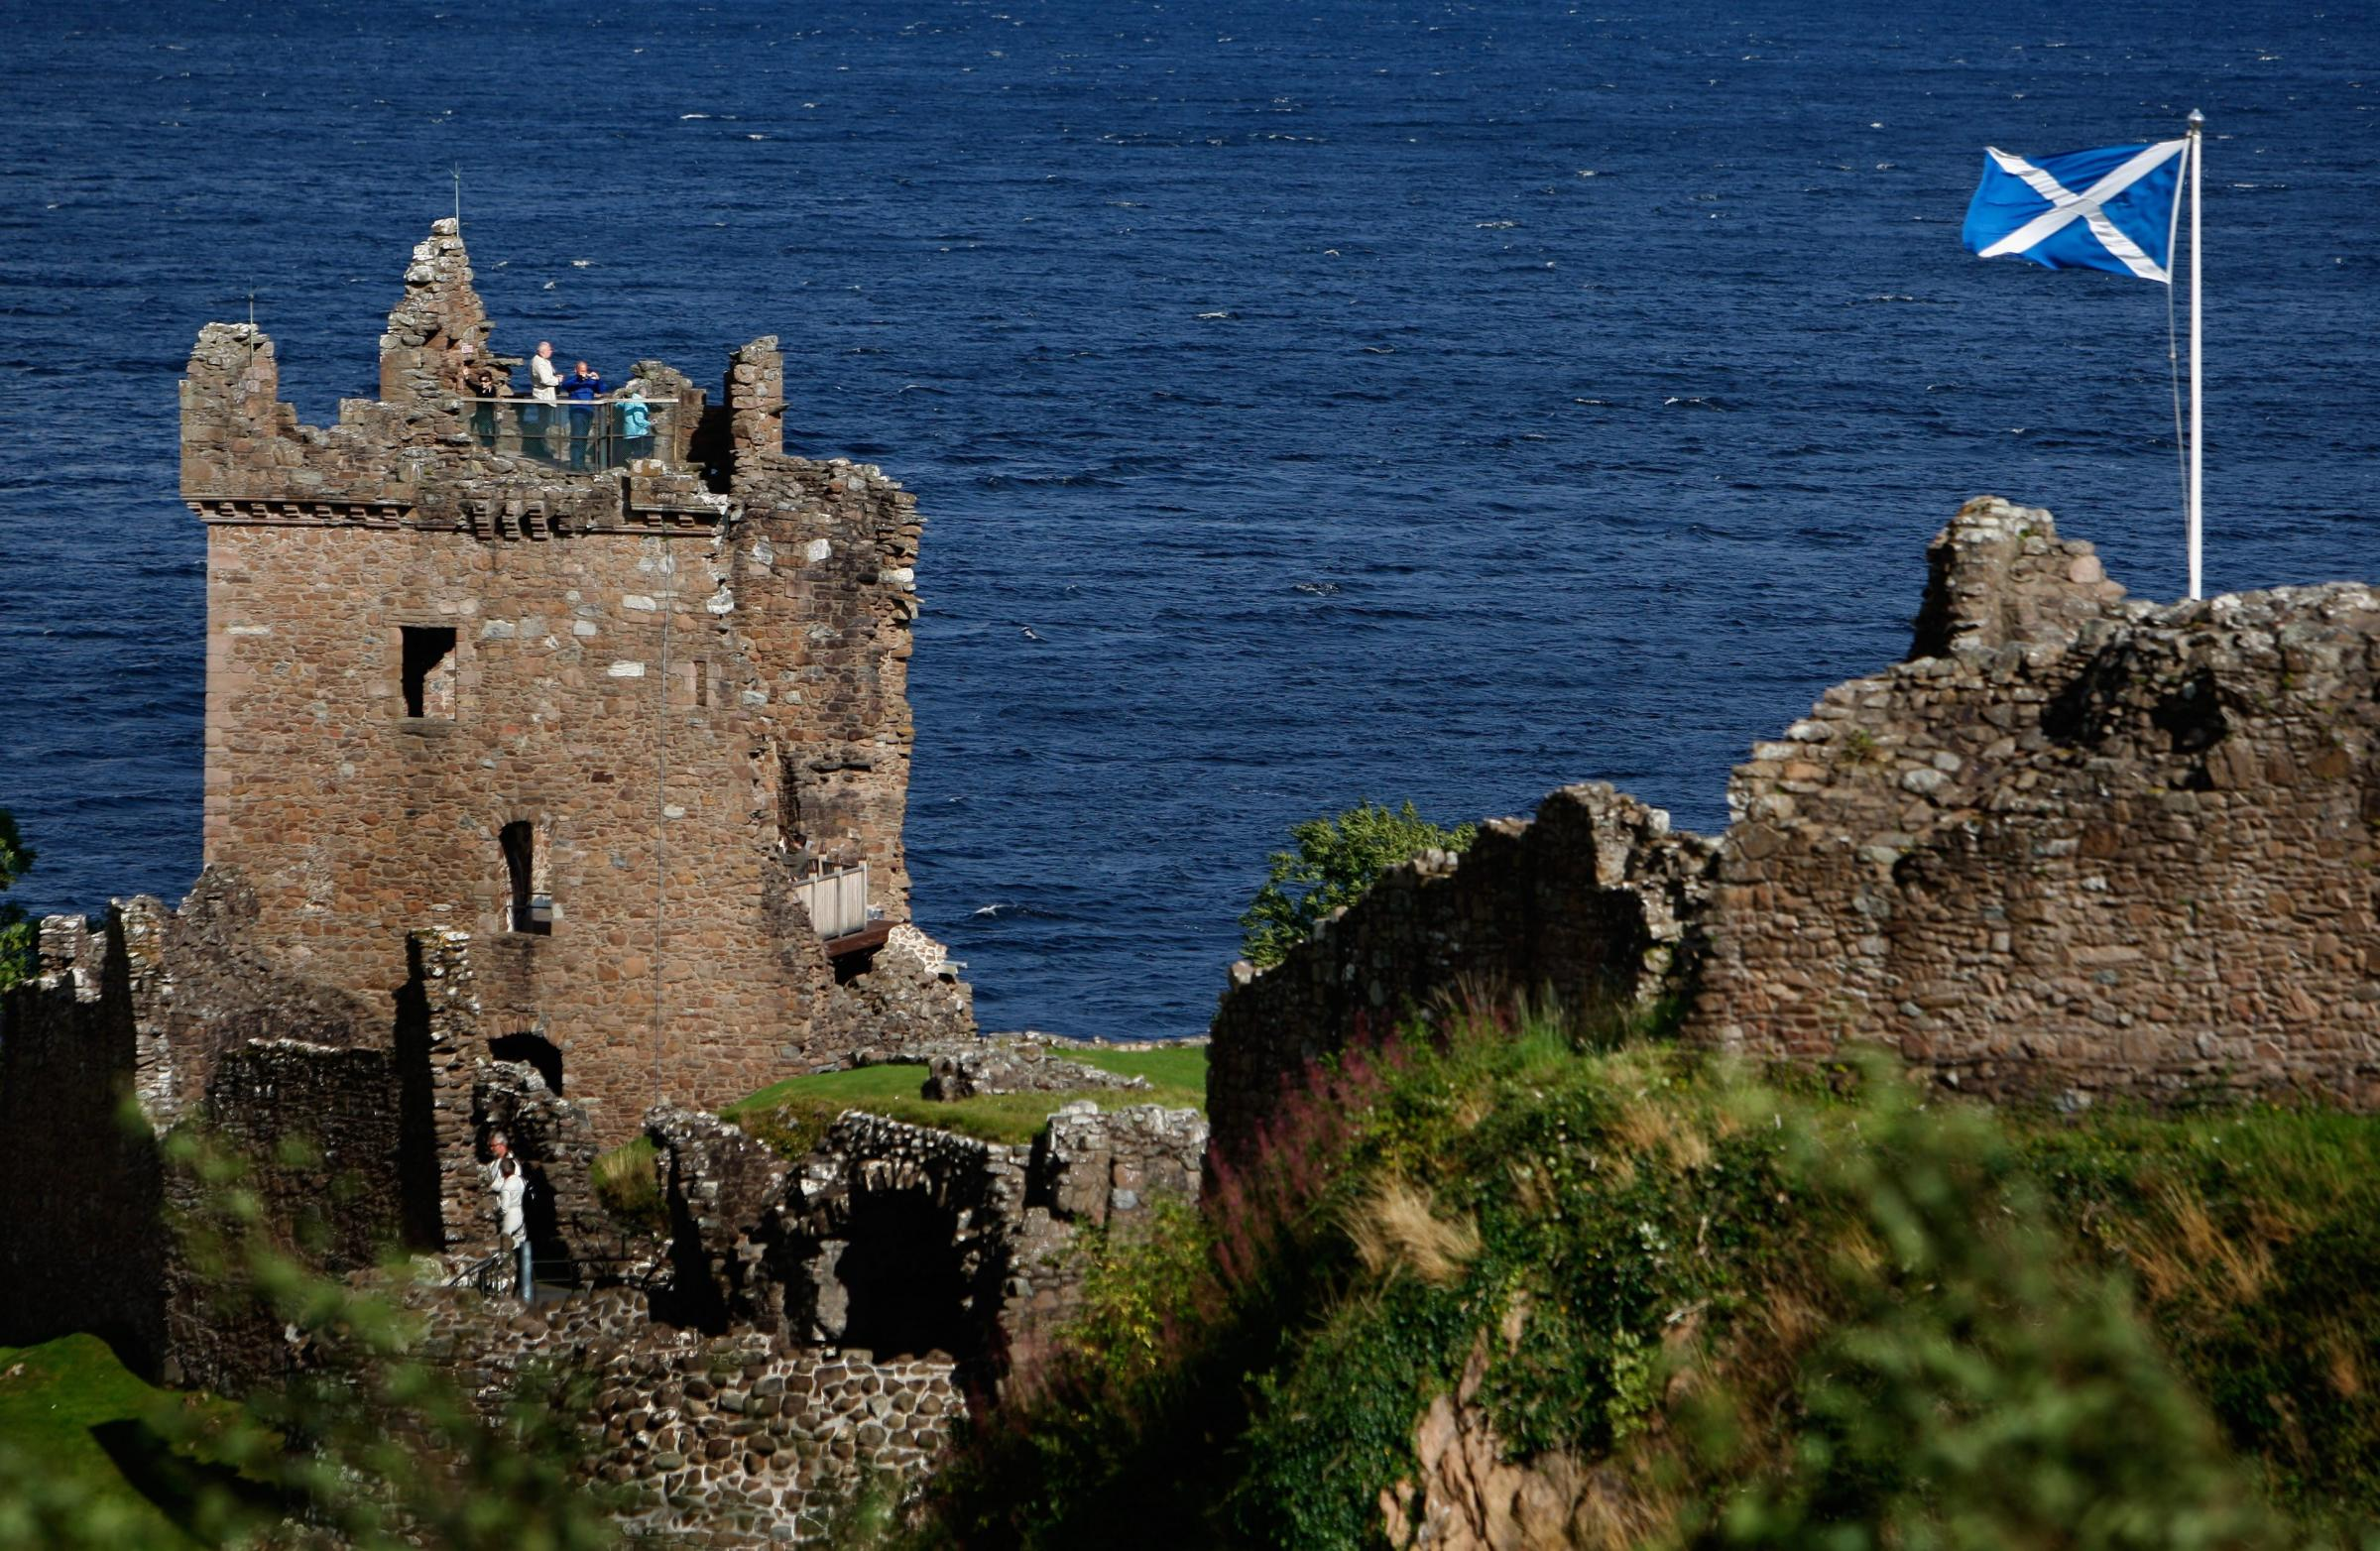 Sites such as Urquhart Castle on the banks of Loch Ness attracted more than 18m visitors to Scotland in 2017-18.